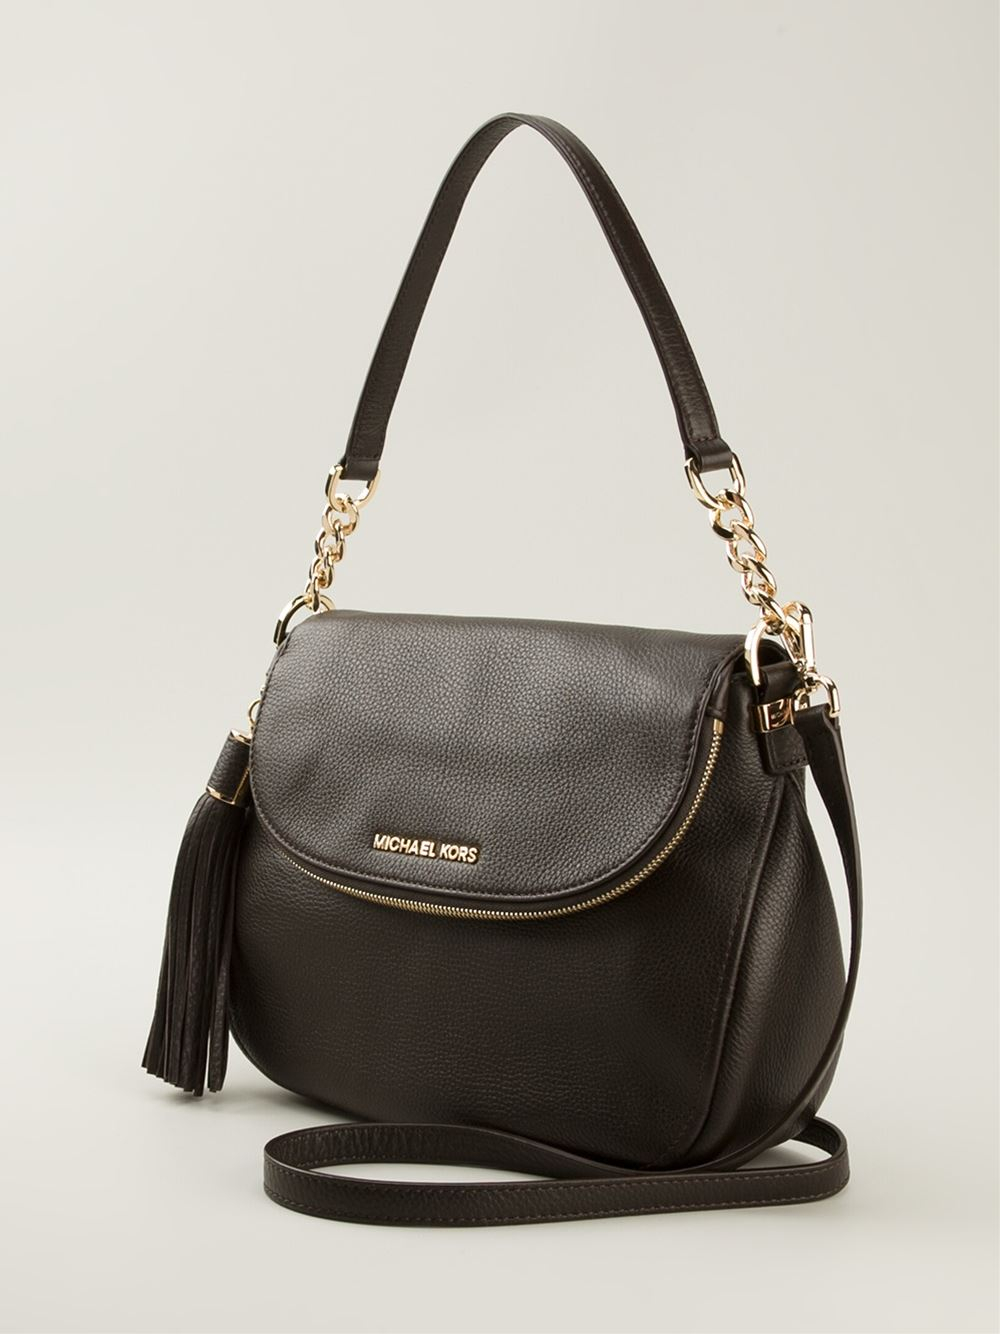 Lyst - Michael Kors Medium Bedford Shoulder Bag in Brown